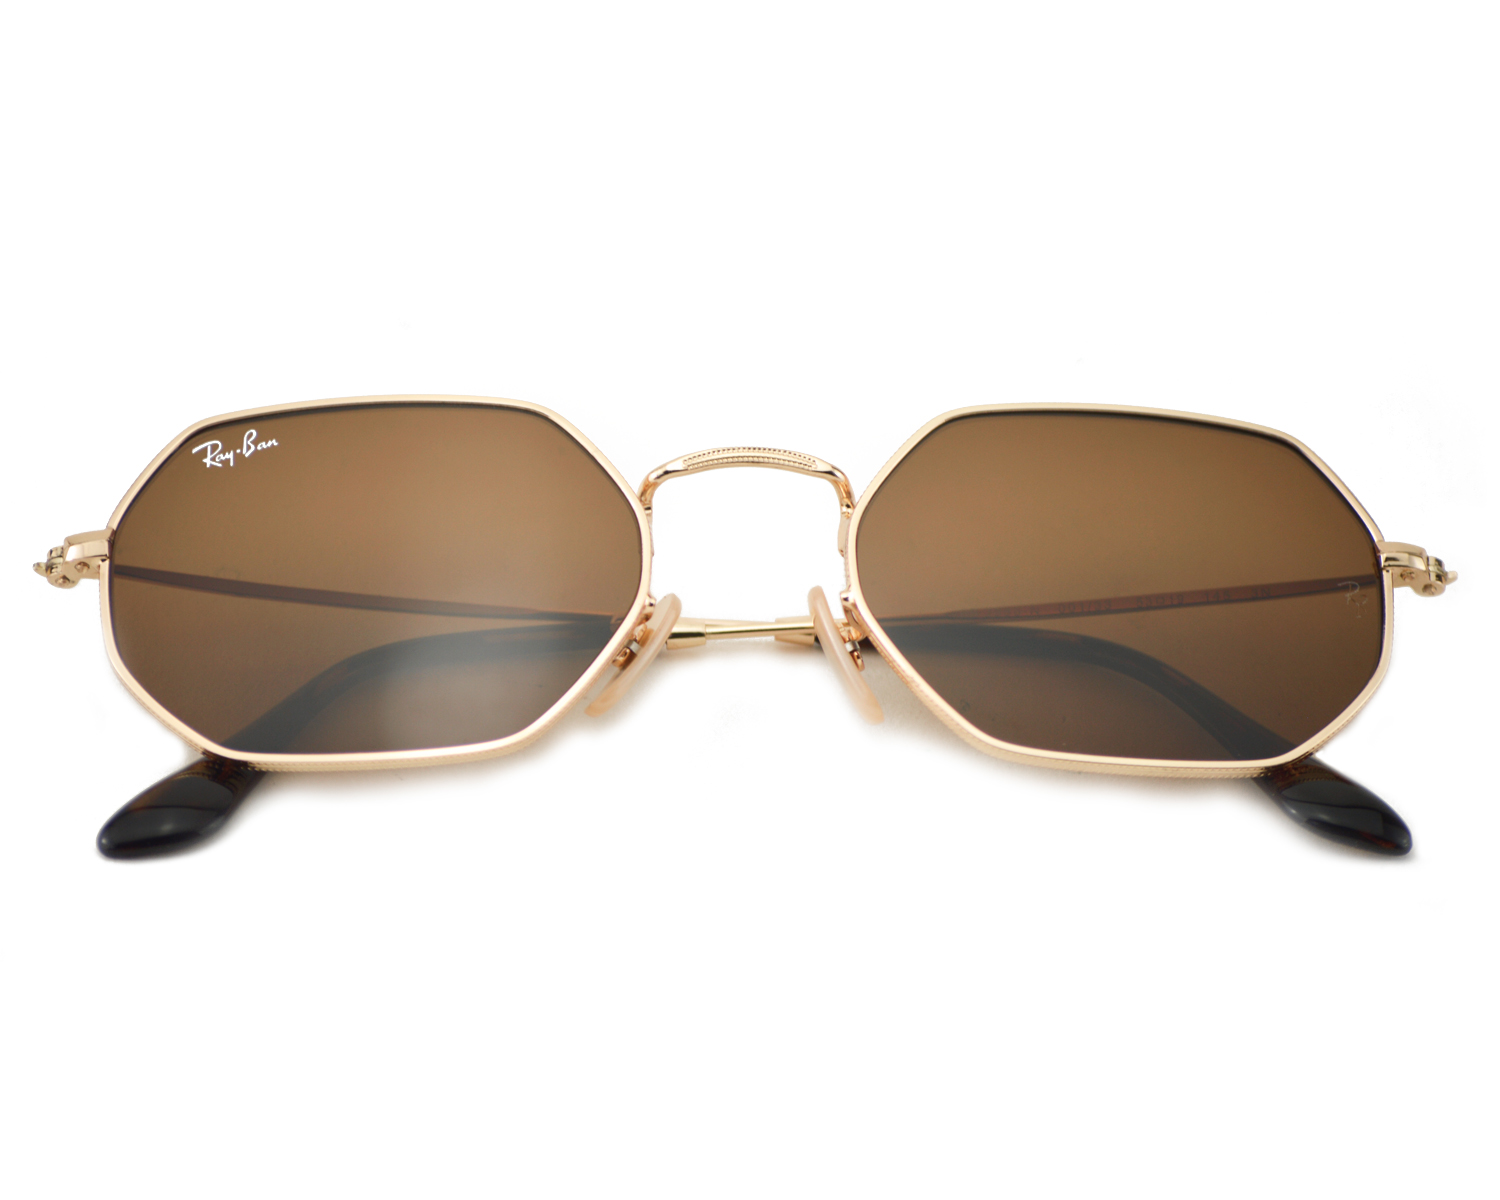 748a7492a5 Ray-Ban RB3556N Octagonal Flat Lenses 001 33 Gold Frame Brown Classic B-15  Lenses Unisex Sunglasses 53mm